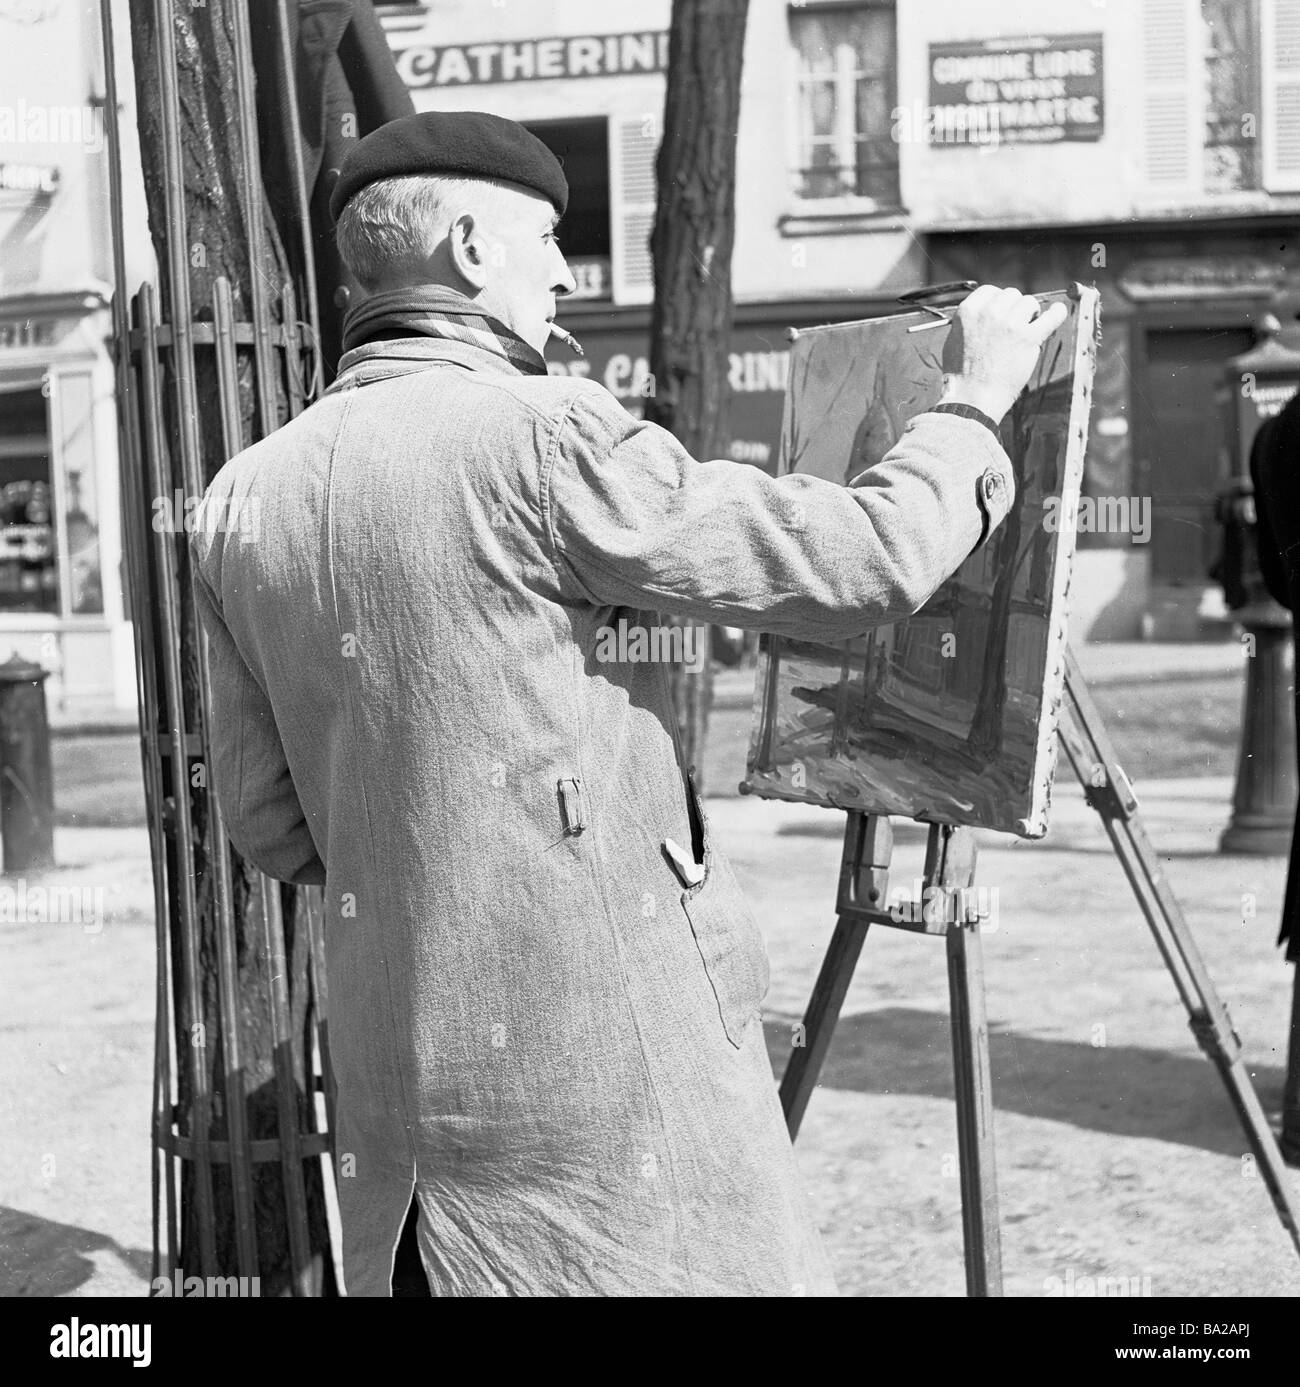 A french street artist wearing a berry,  raincoat and smoking, works on his canvas, Place du Tertre, Paris, France - Stock Image